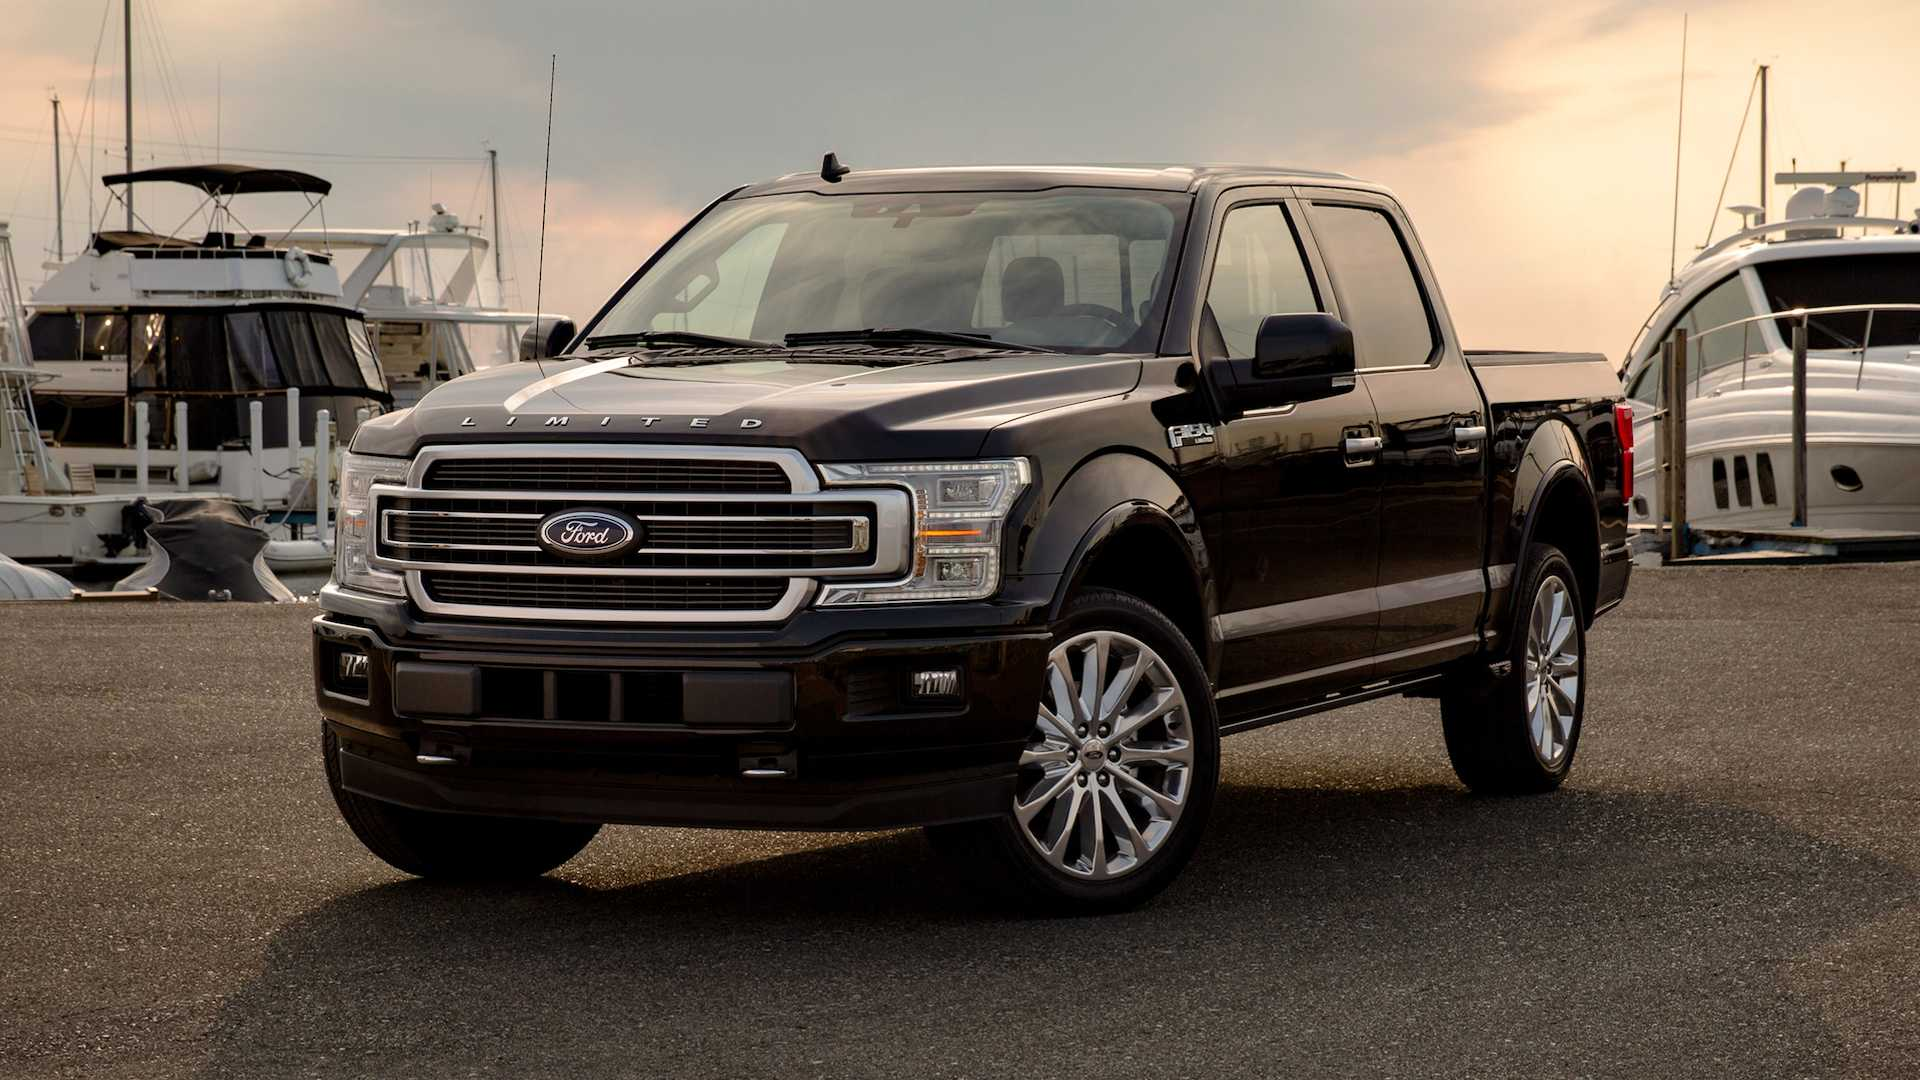 30 The 2019 Ford 150 Price Design And Review